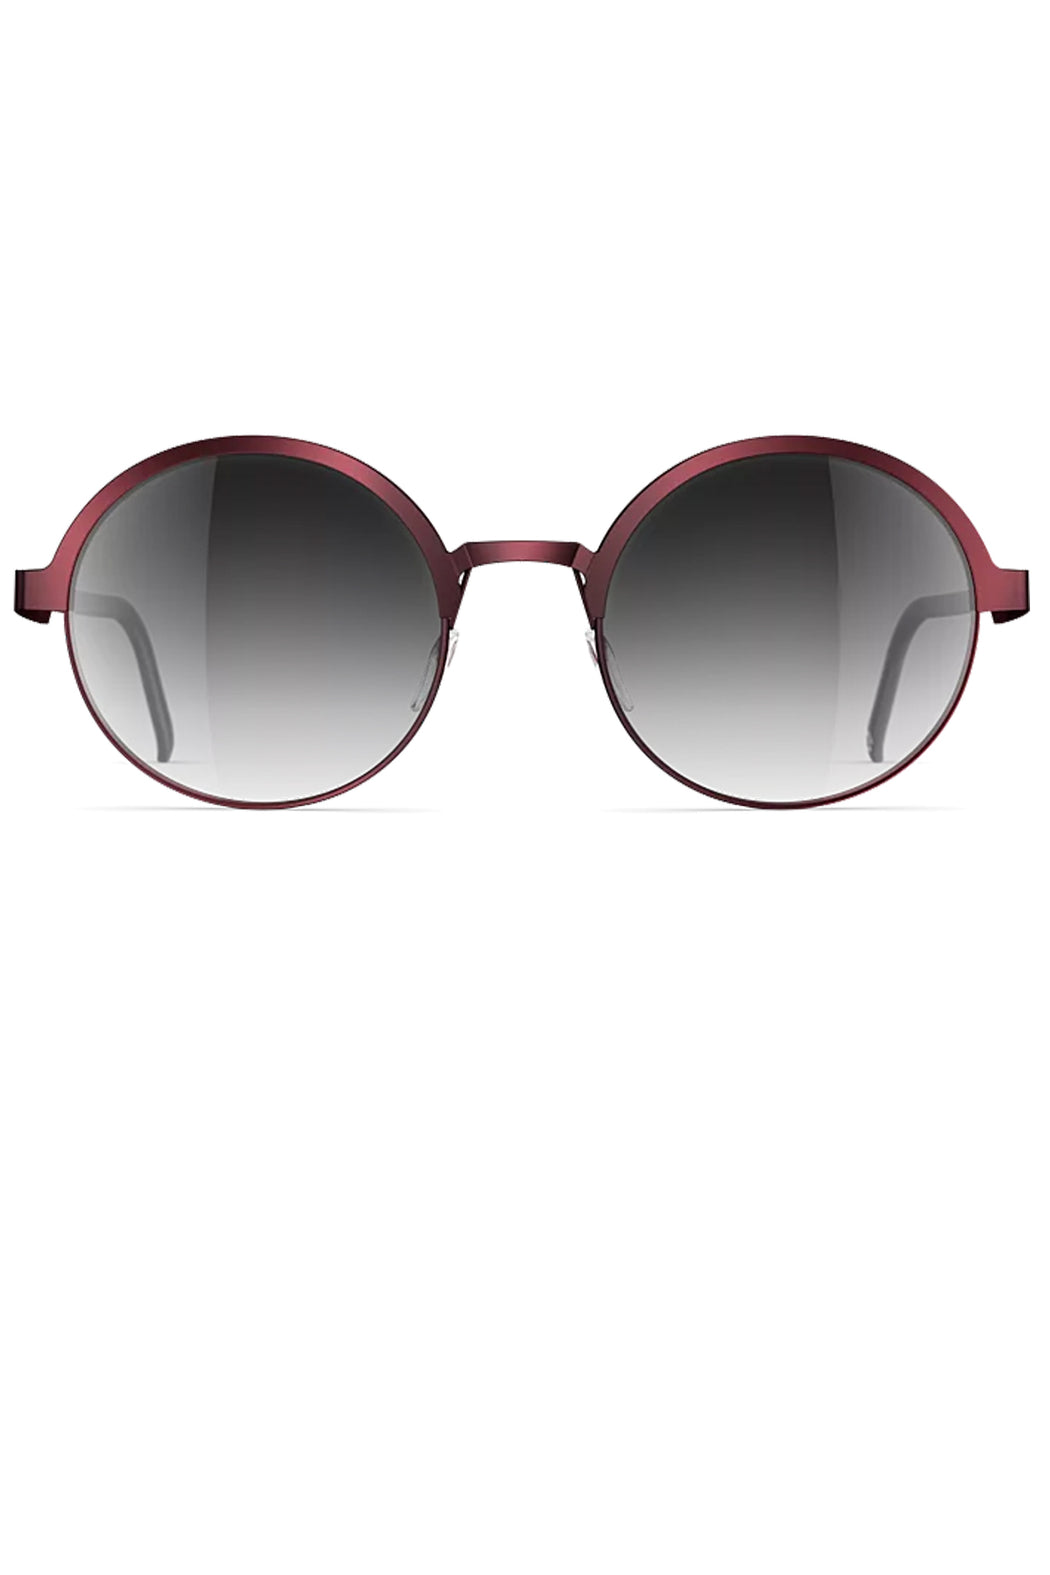 FLO T624 ruby red matte Fb.3140